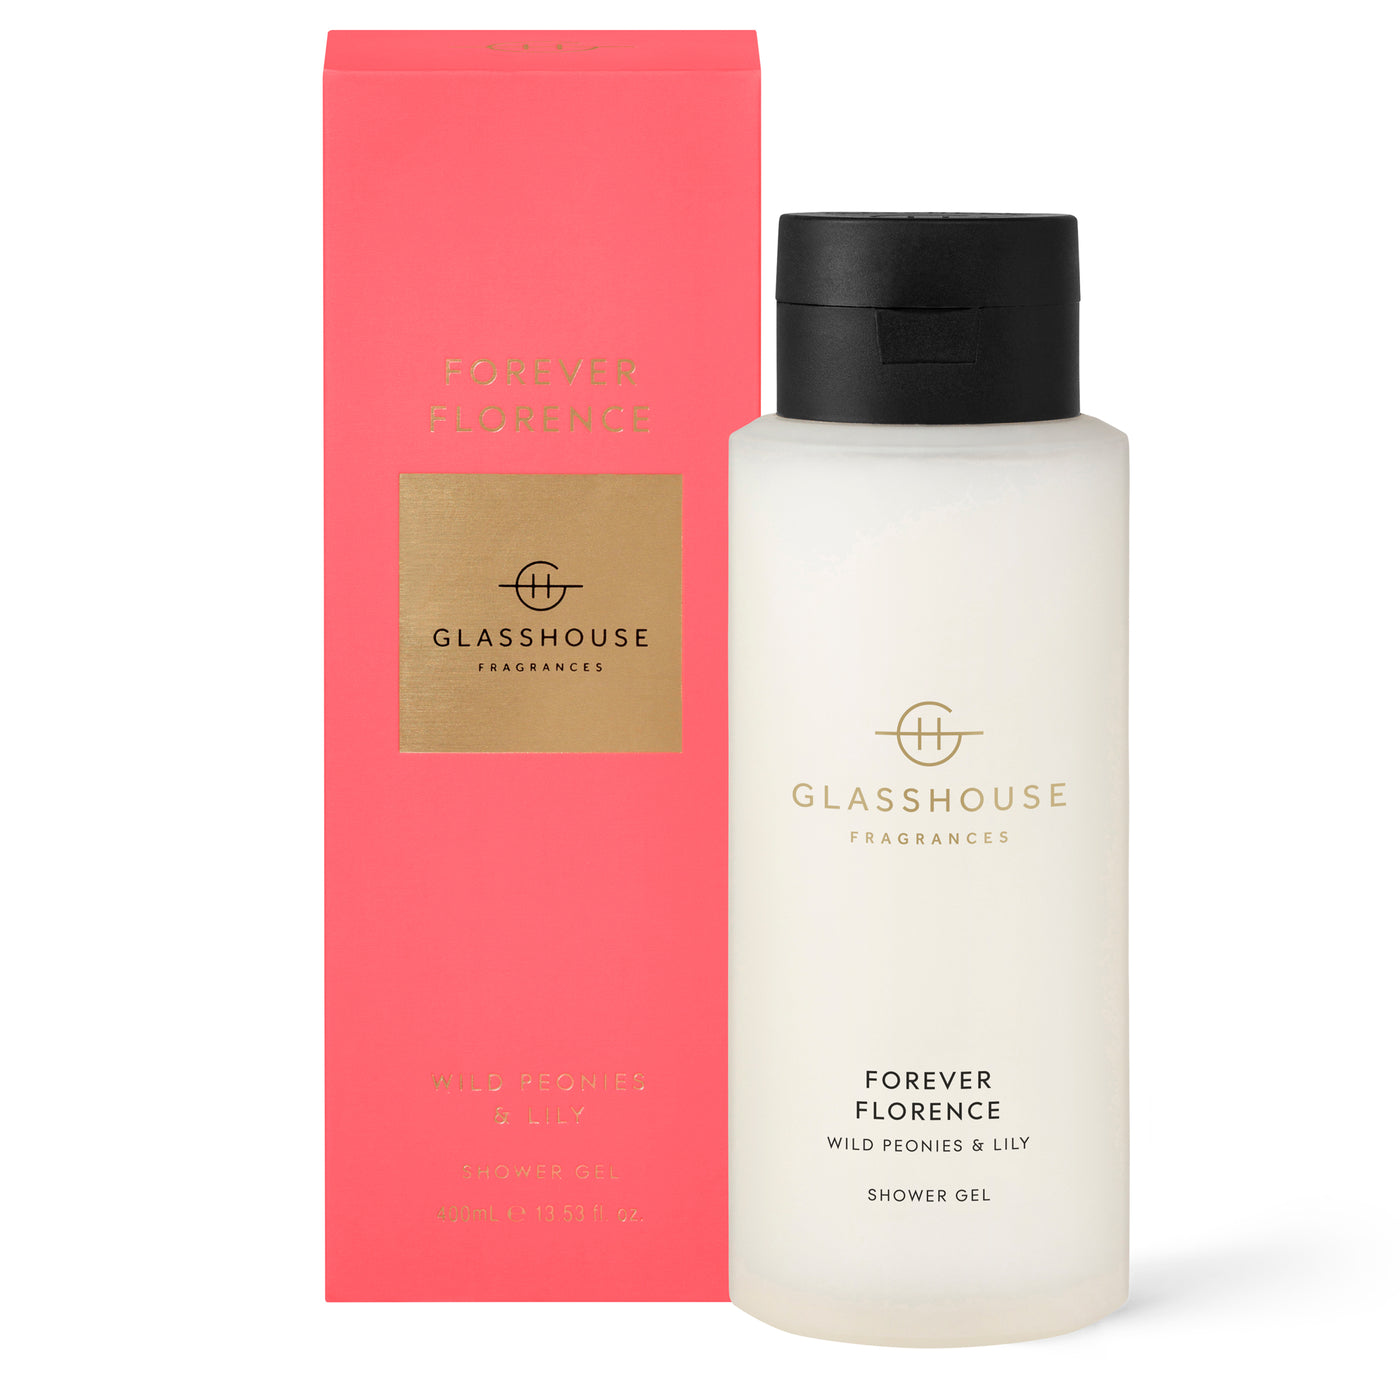 400ml FOREVER FLORENCE Shower Gel